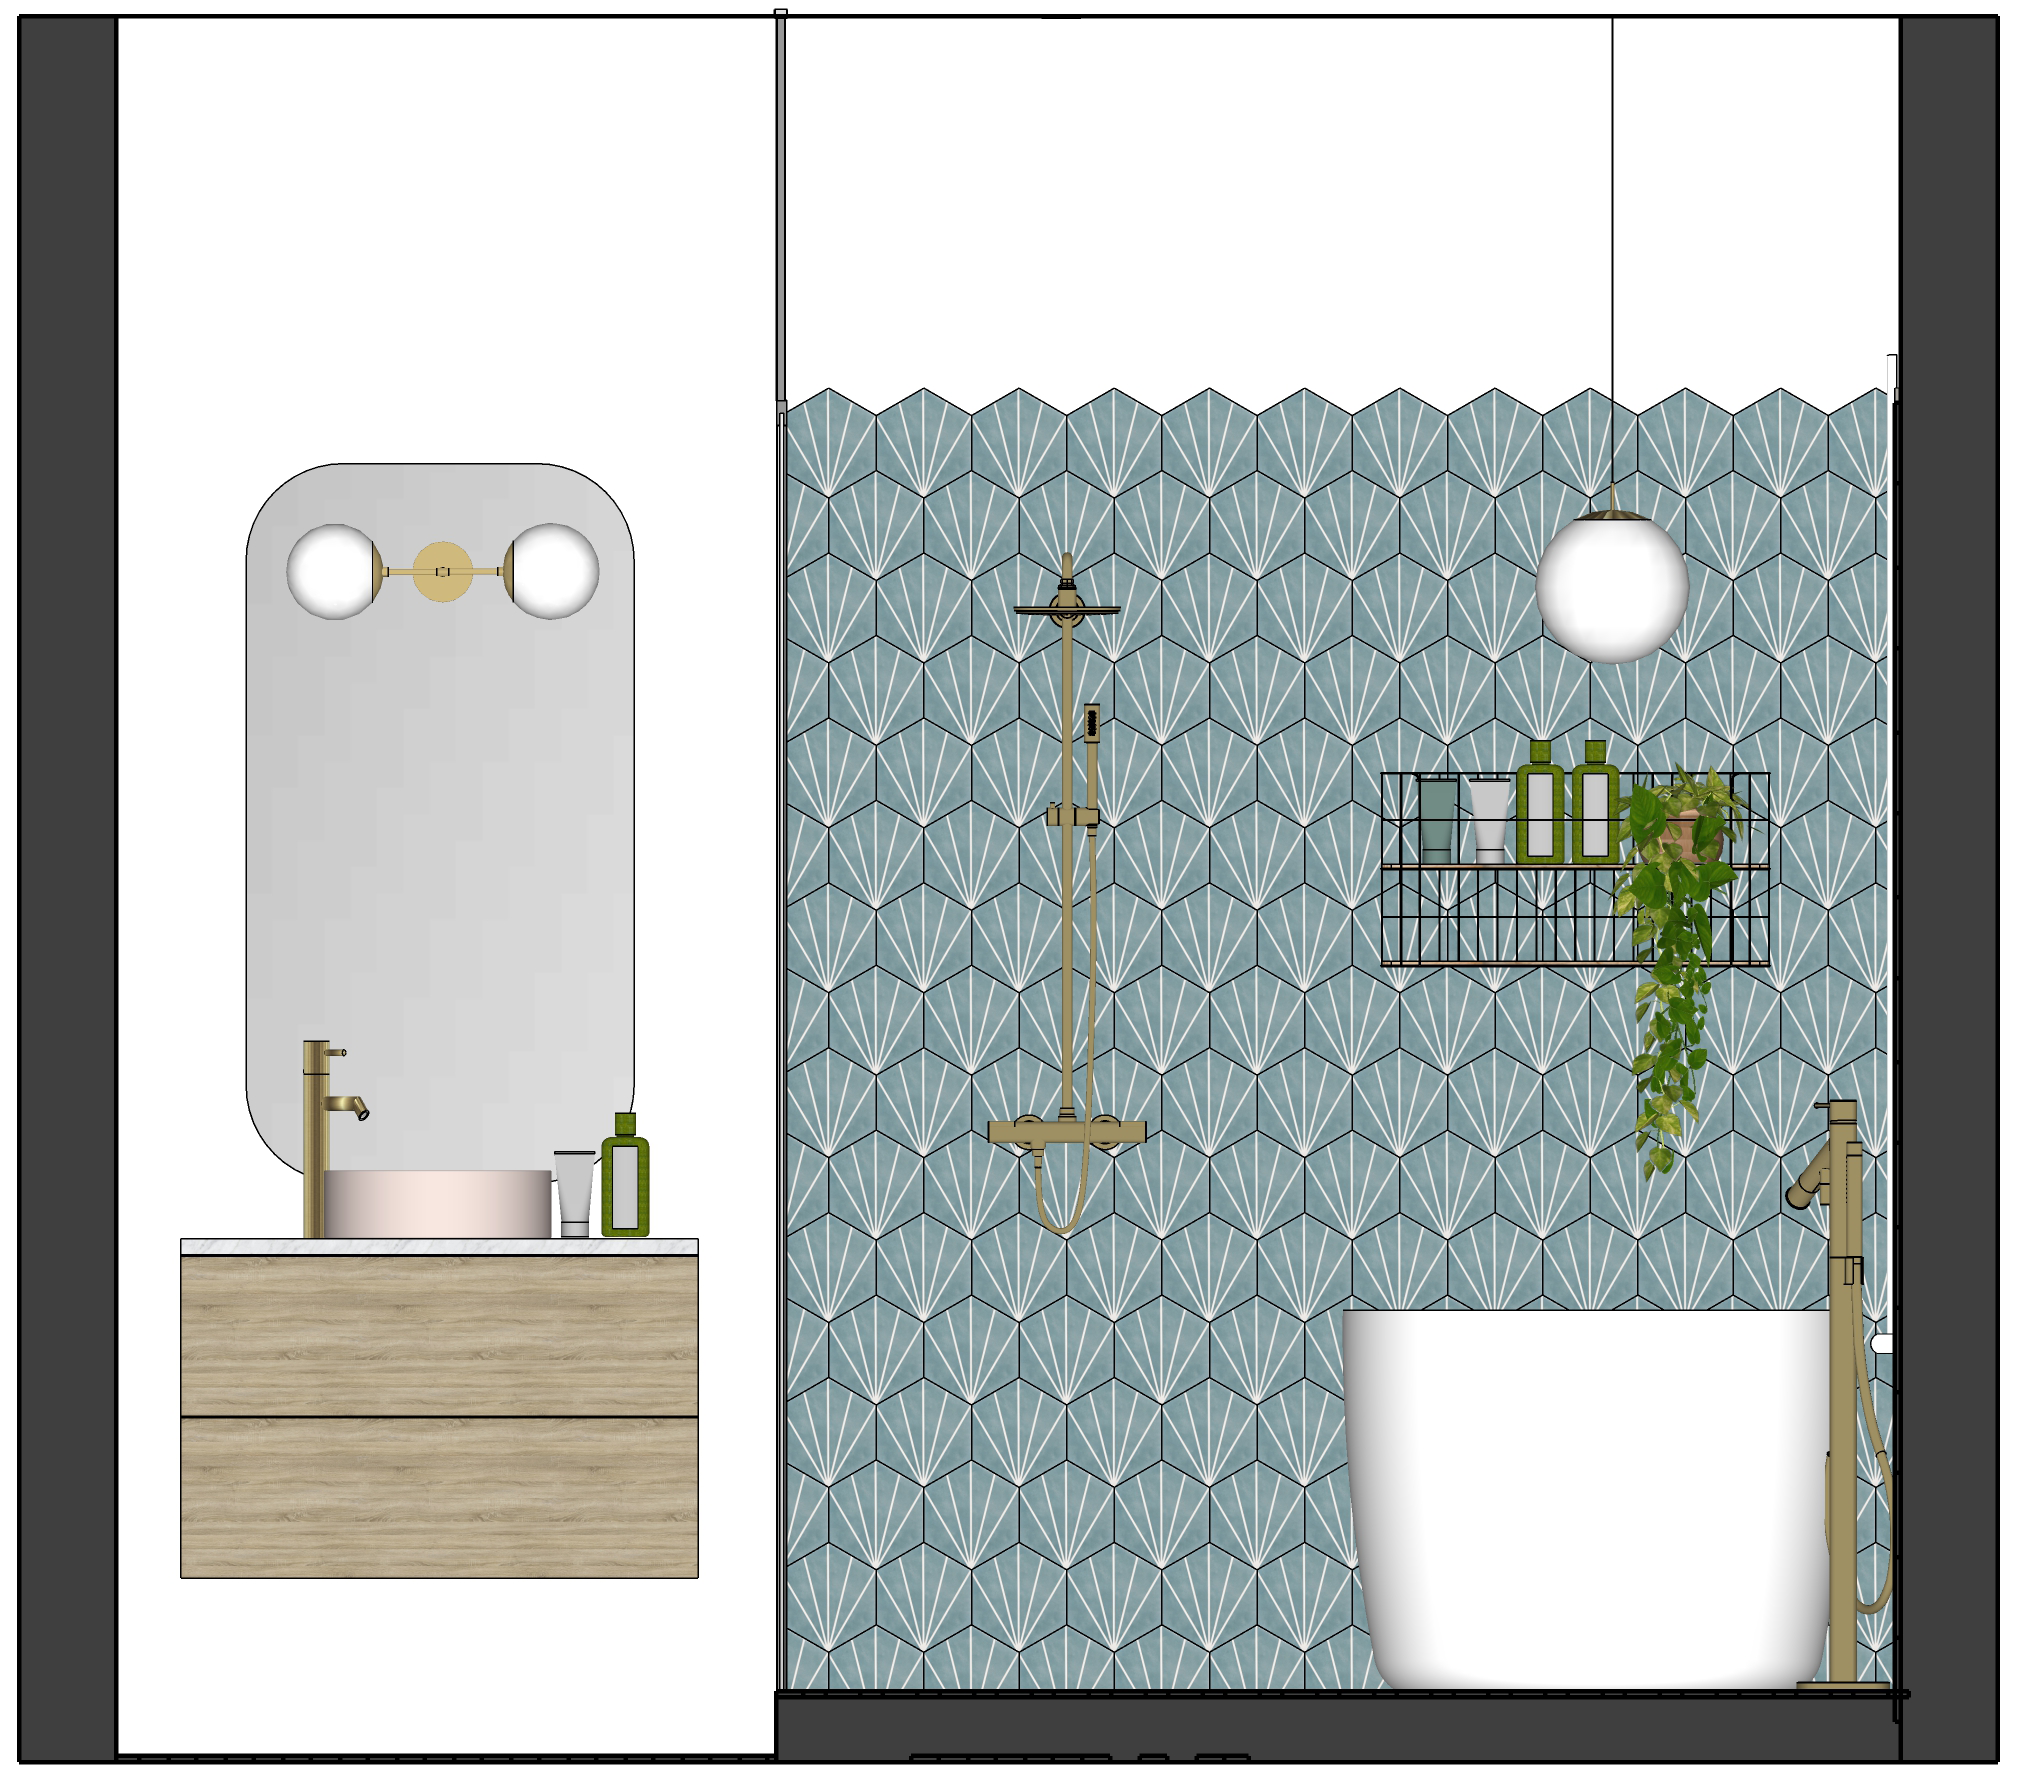 Small Bathroom Elevation to show layout